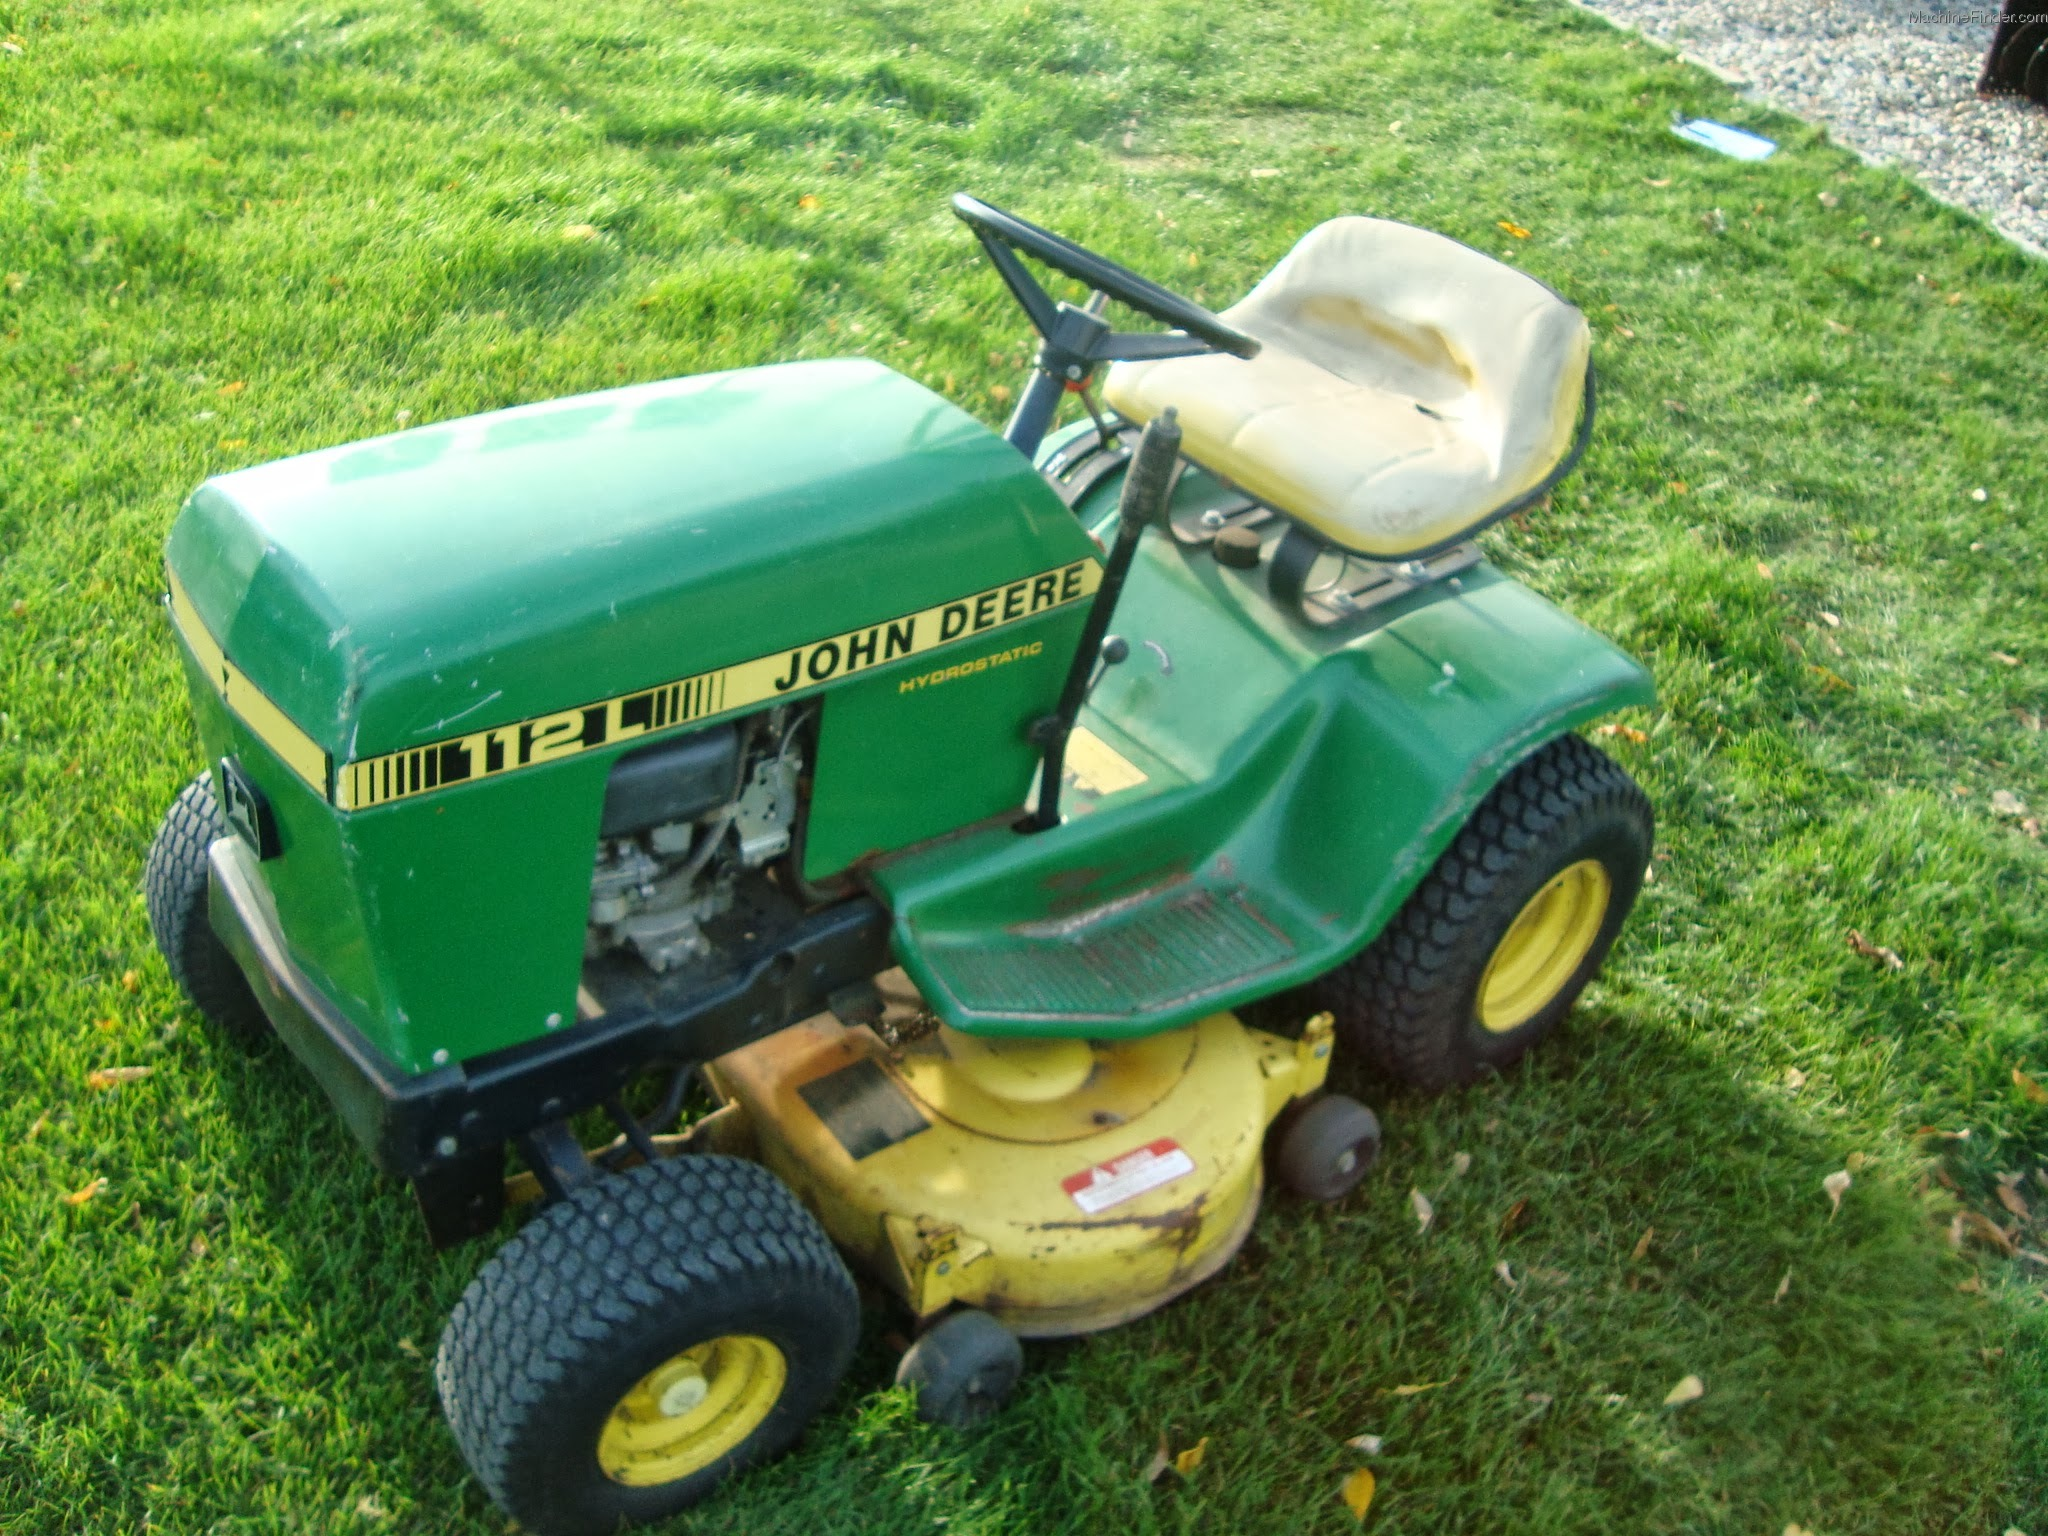 1985 John Deere 112 Lawn & Garden and Commercial Mowing - John Deere MachineFinder